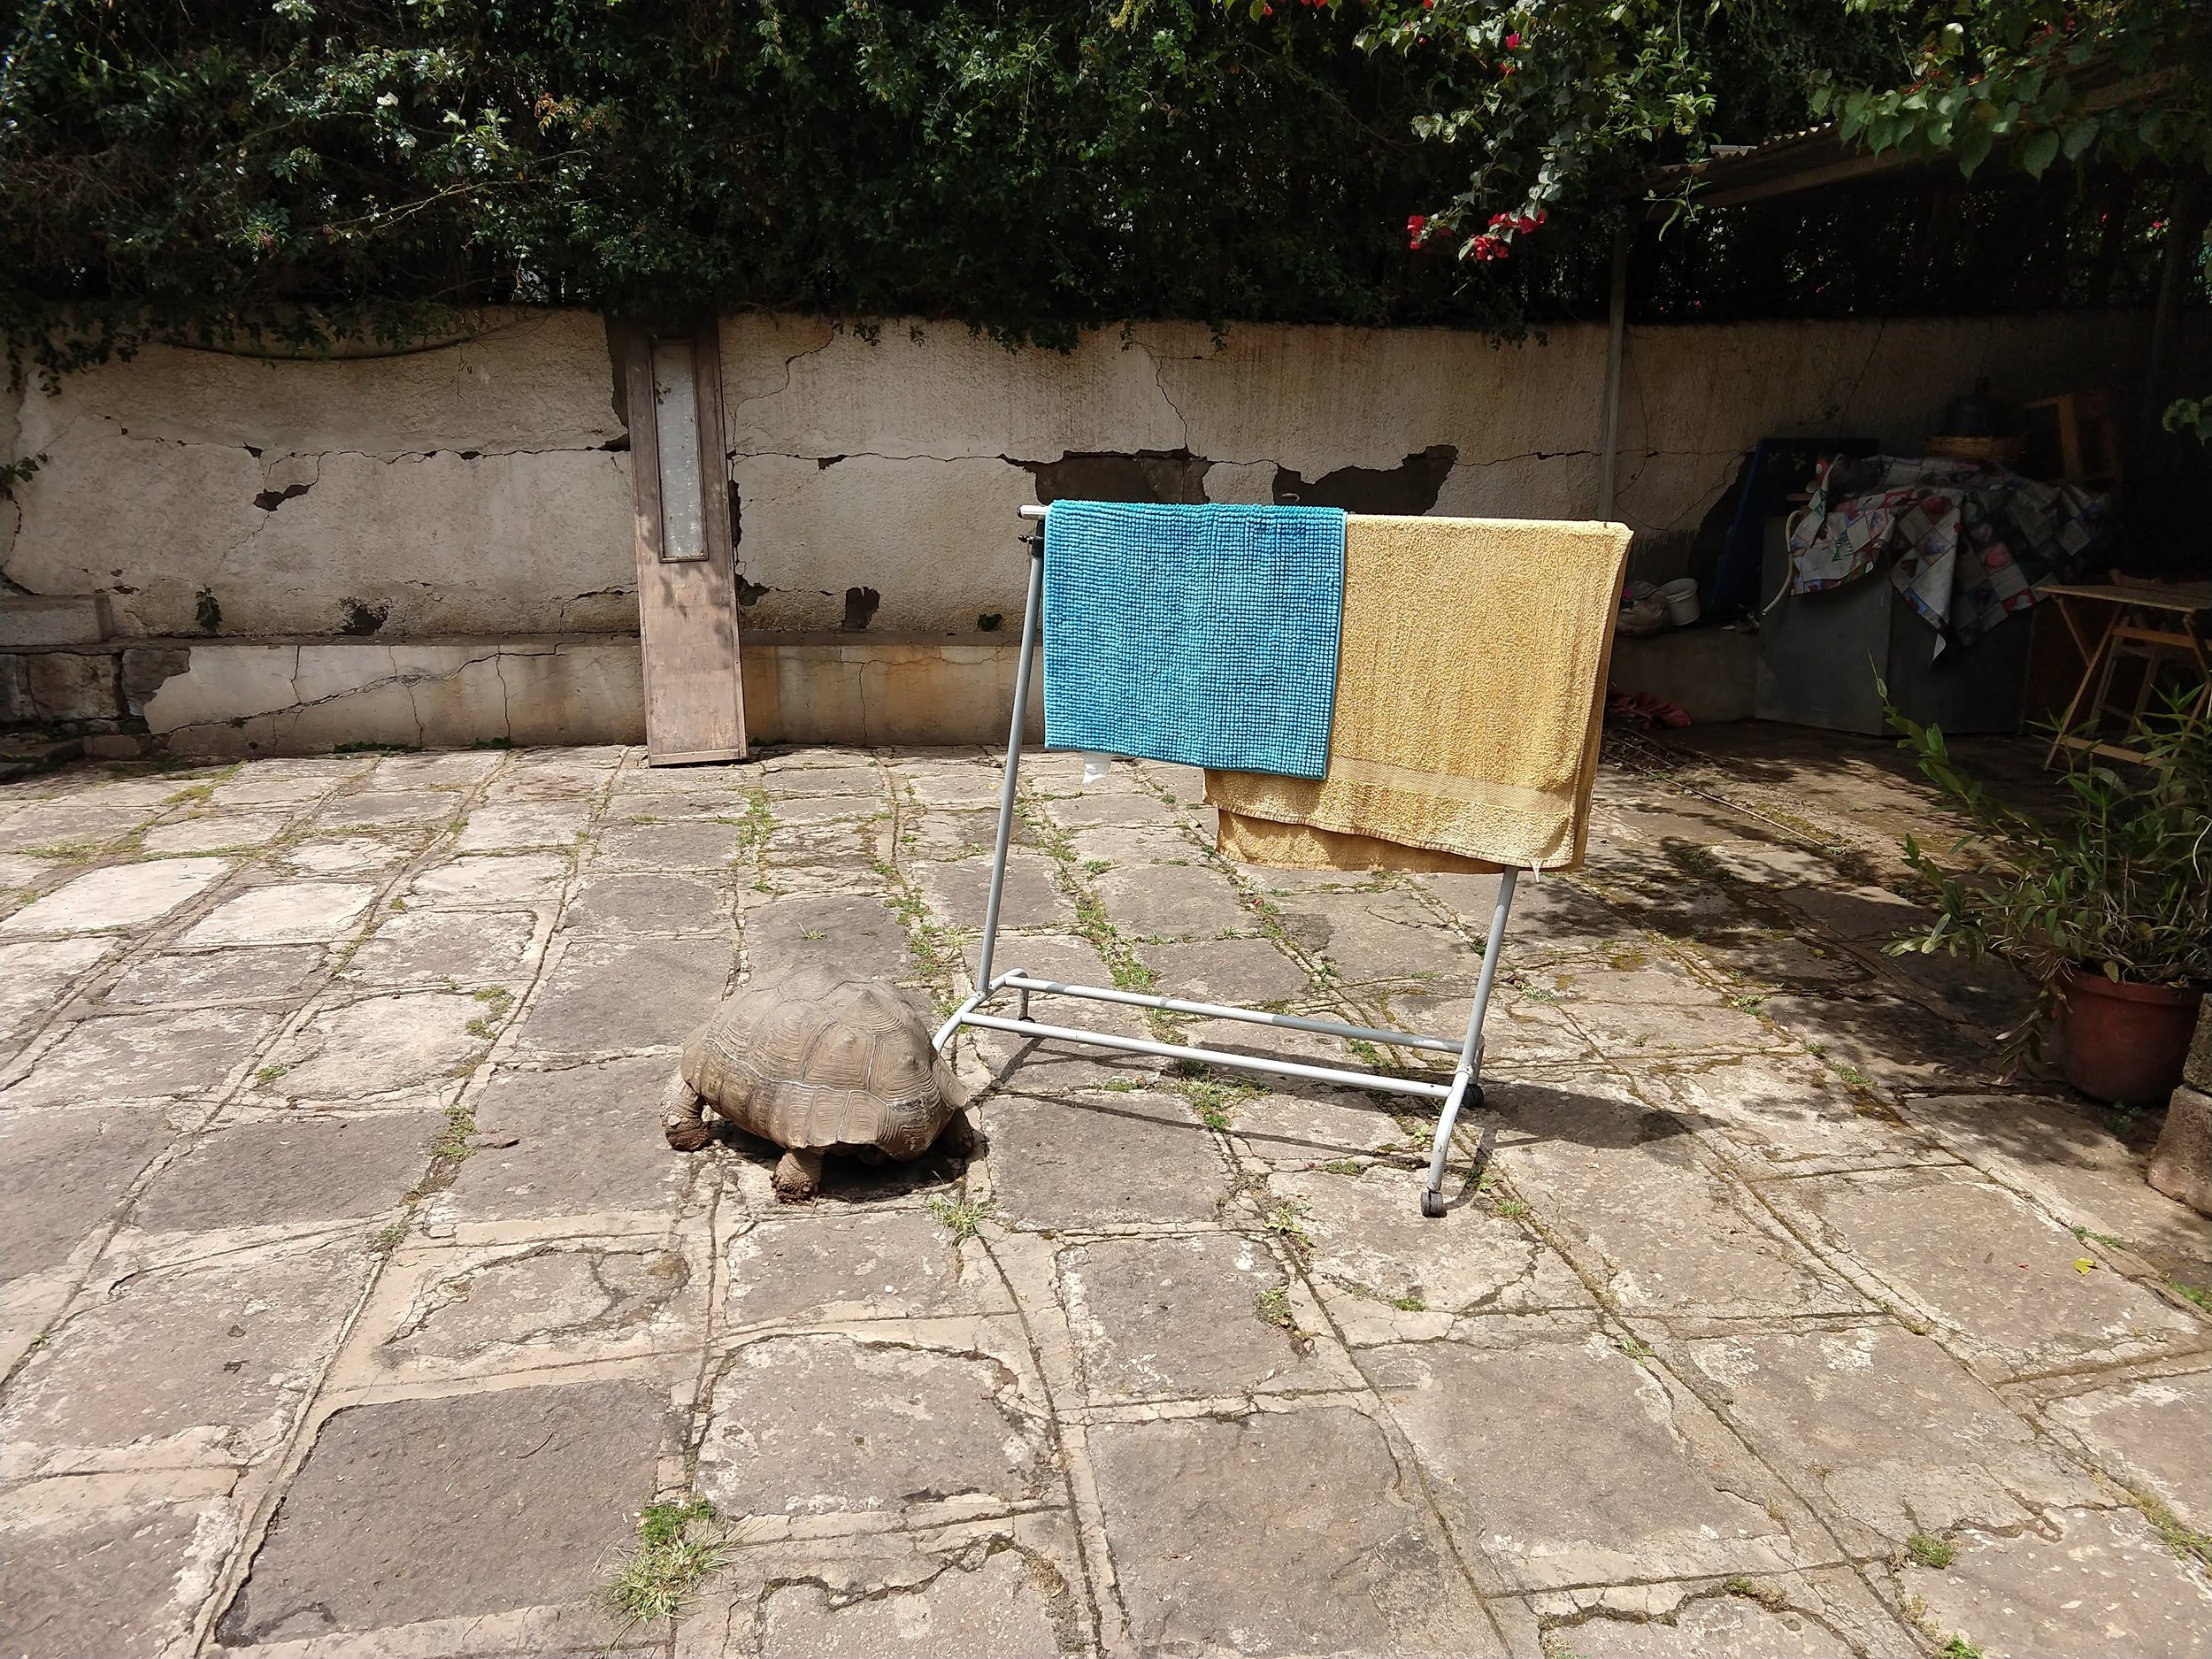 During my second stay, I got more exposure to Ethiopia's Italian history, thanks to my expat host. (Shown here: a turtle in her courtyard.) I even attended a jazz concert featuring an Italian quartet, organized through a local cultural institute.